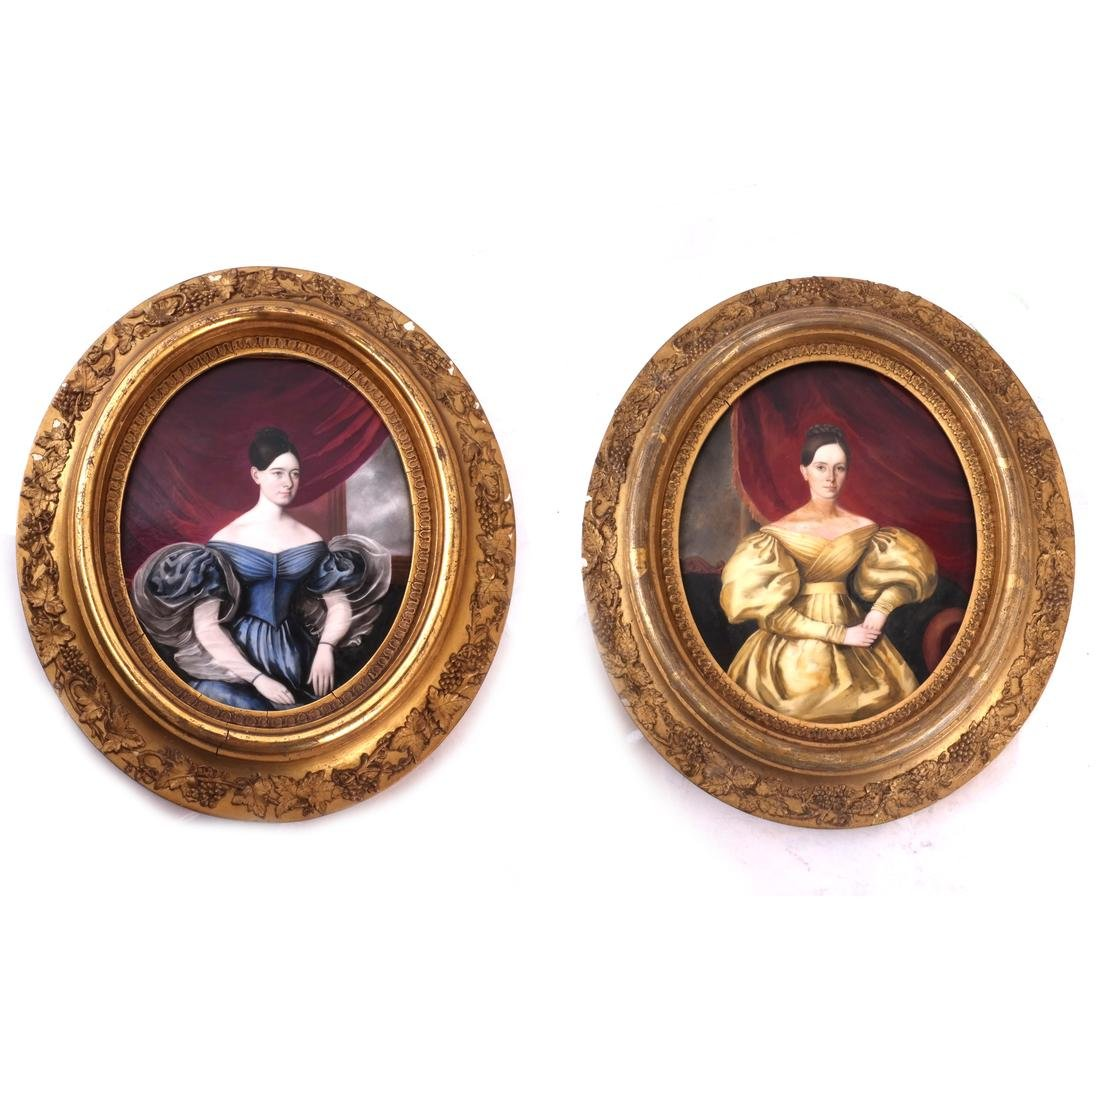 Pair of Porcelain Plaques of Women